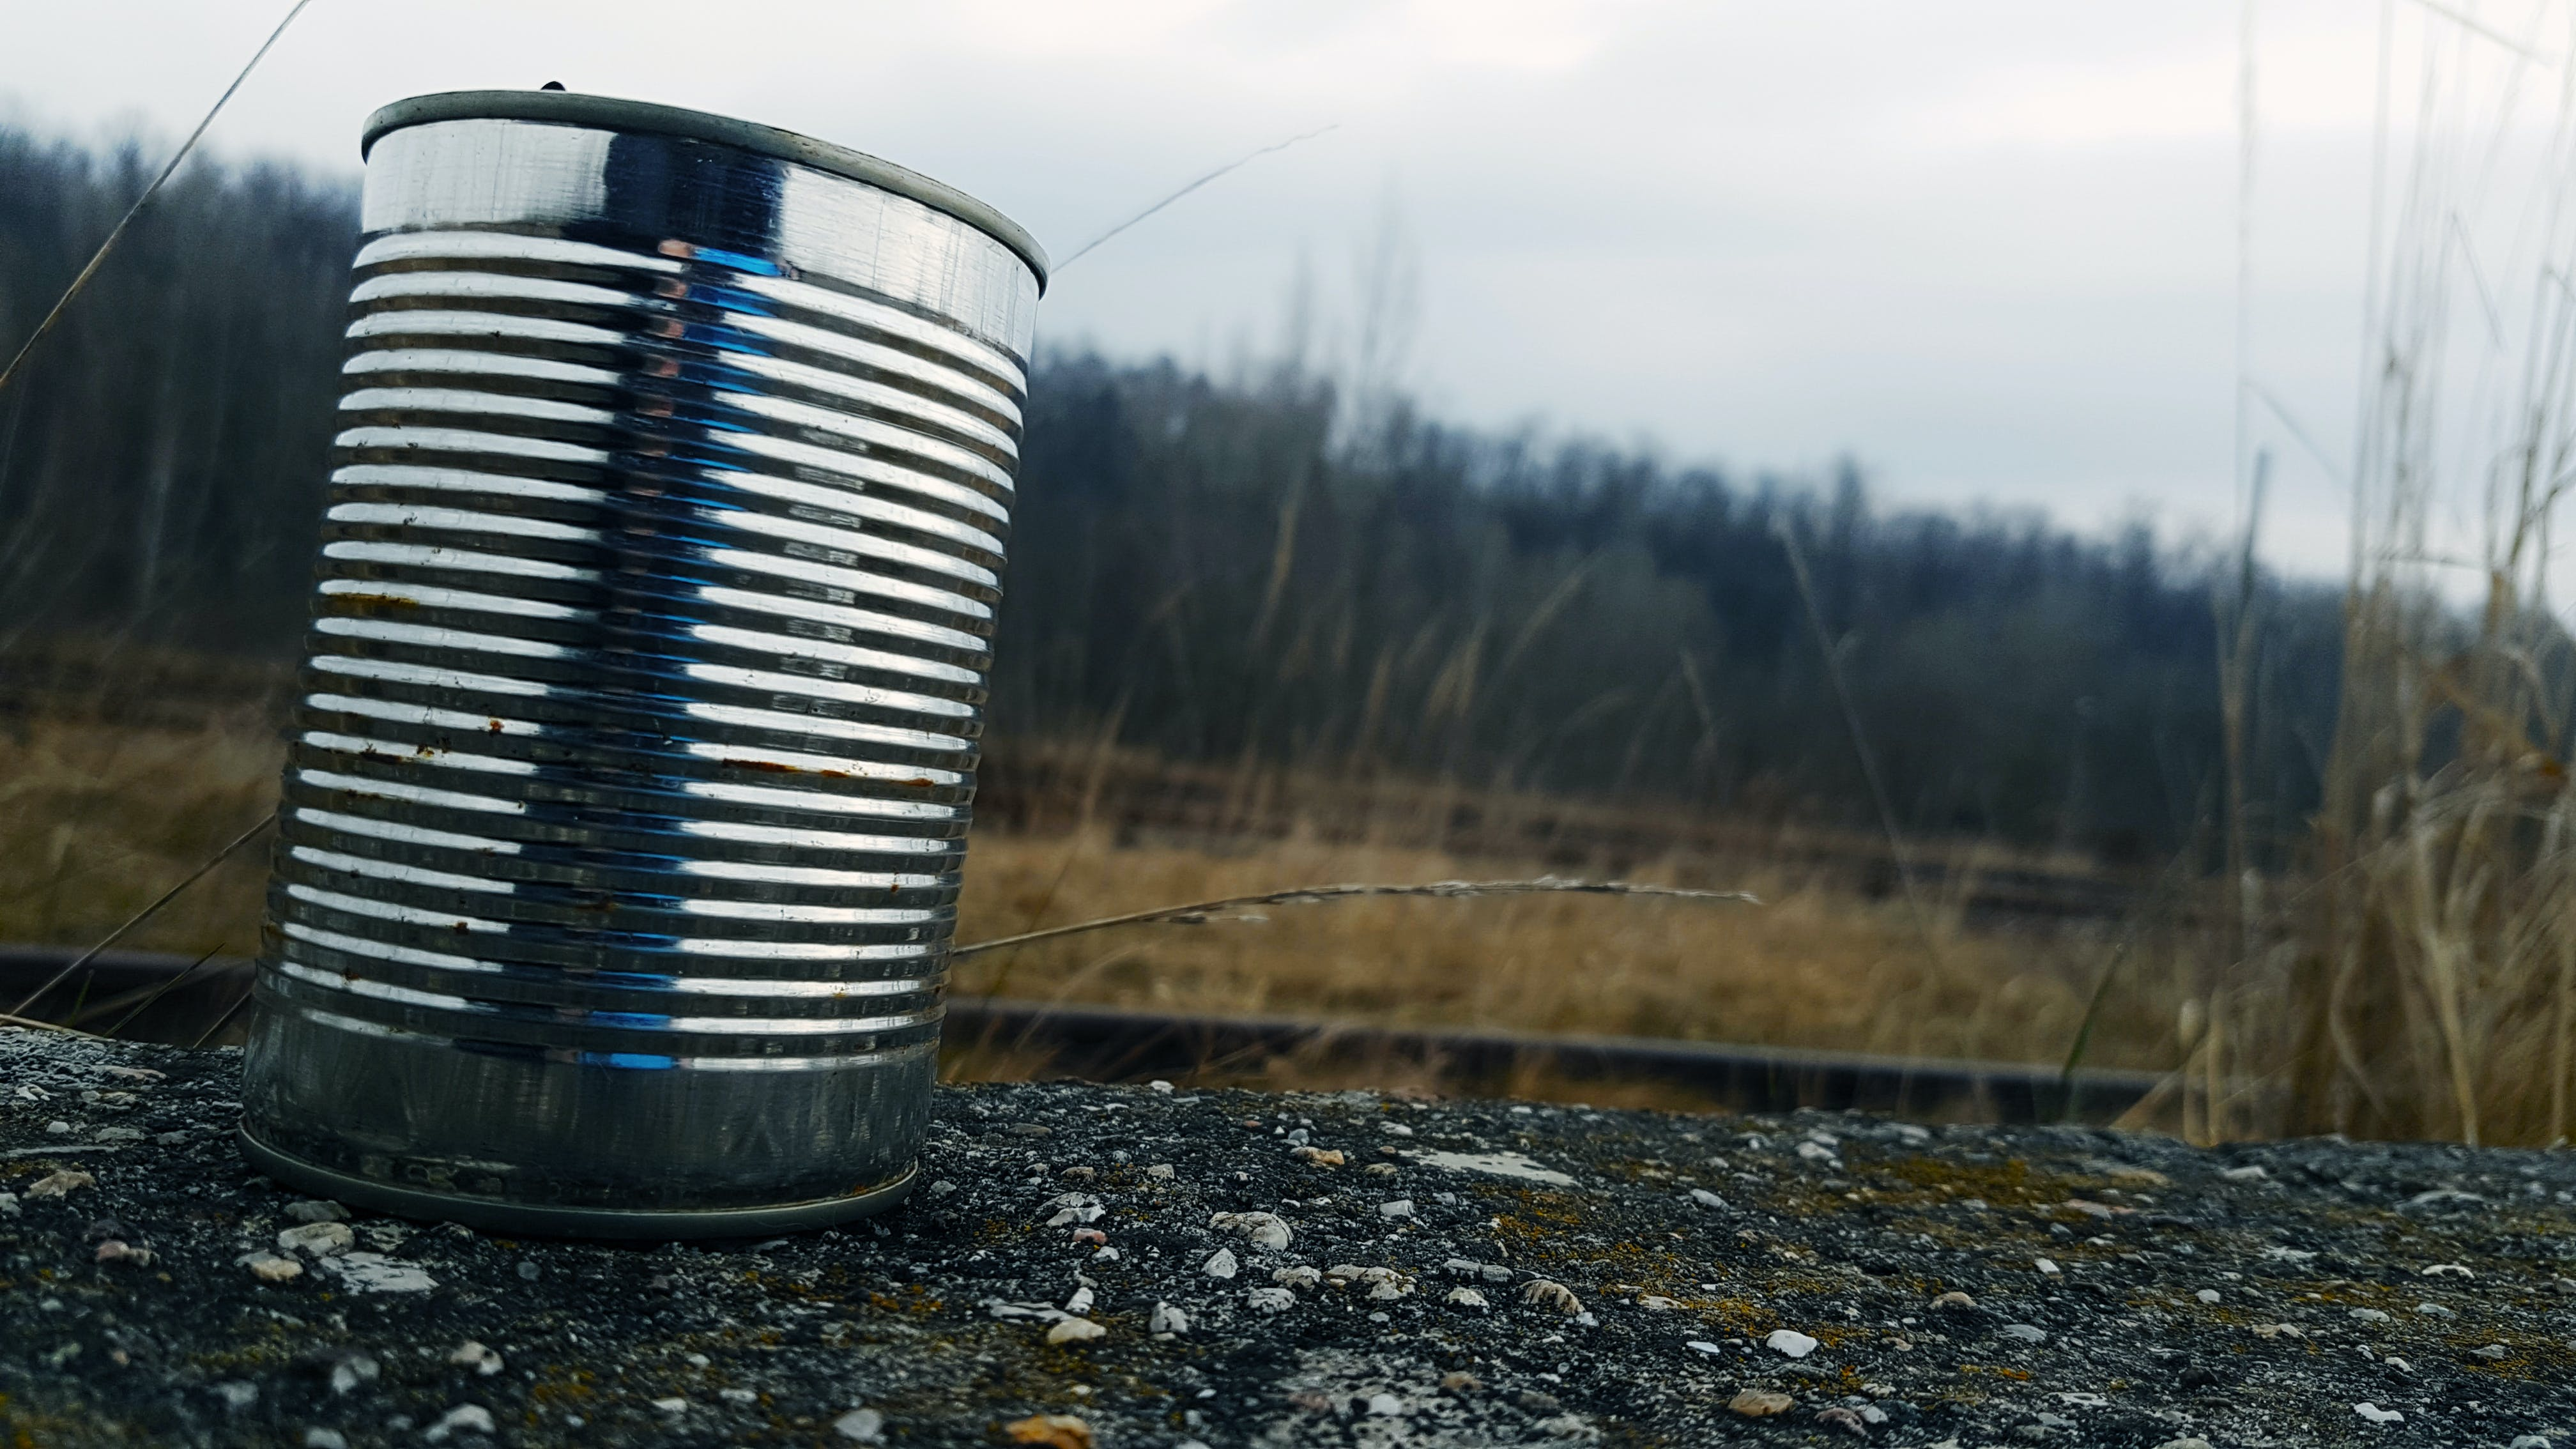 Tin Can on Gravel Surface